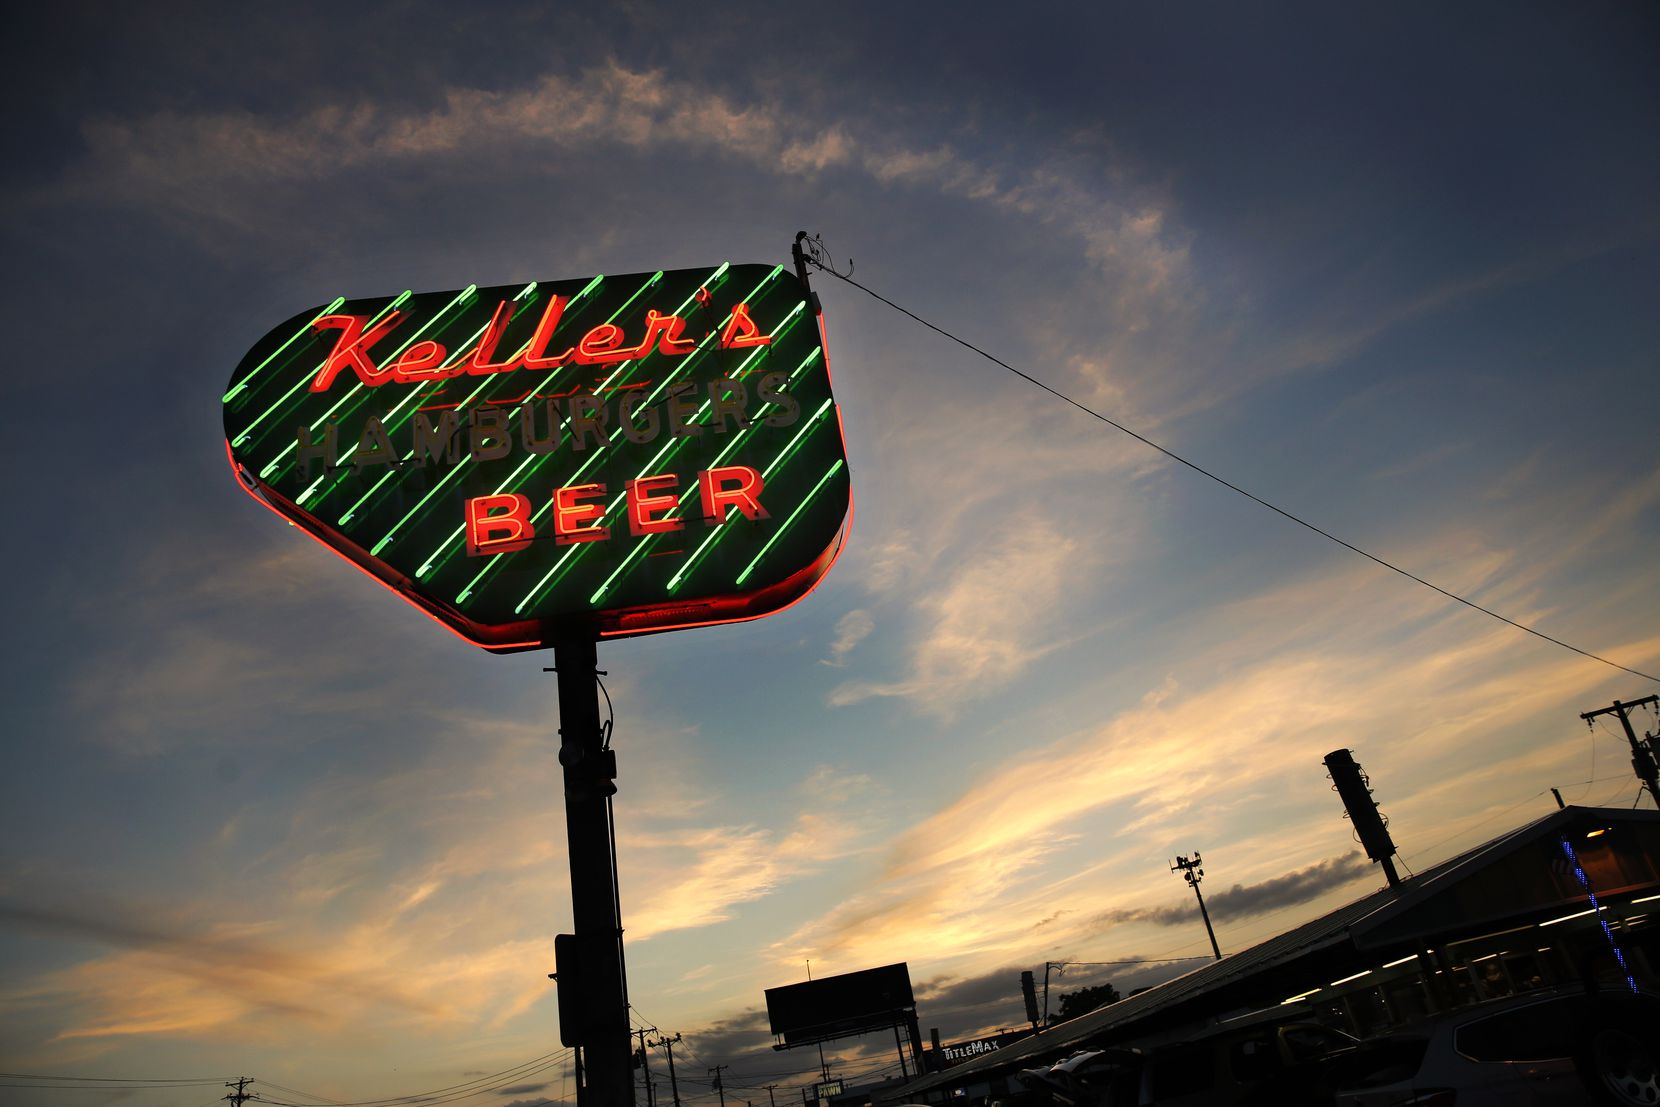 The sun sets behind Keller's Drive-In's neon sign.